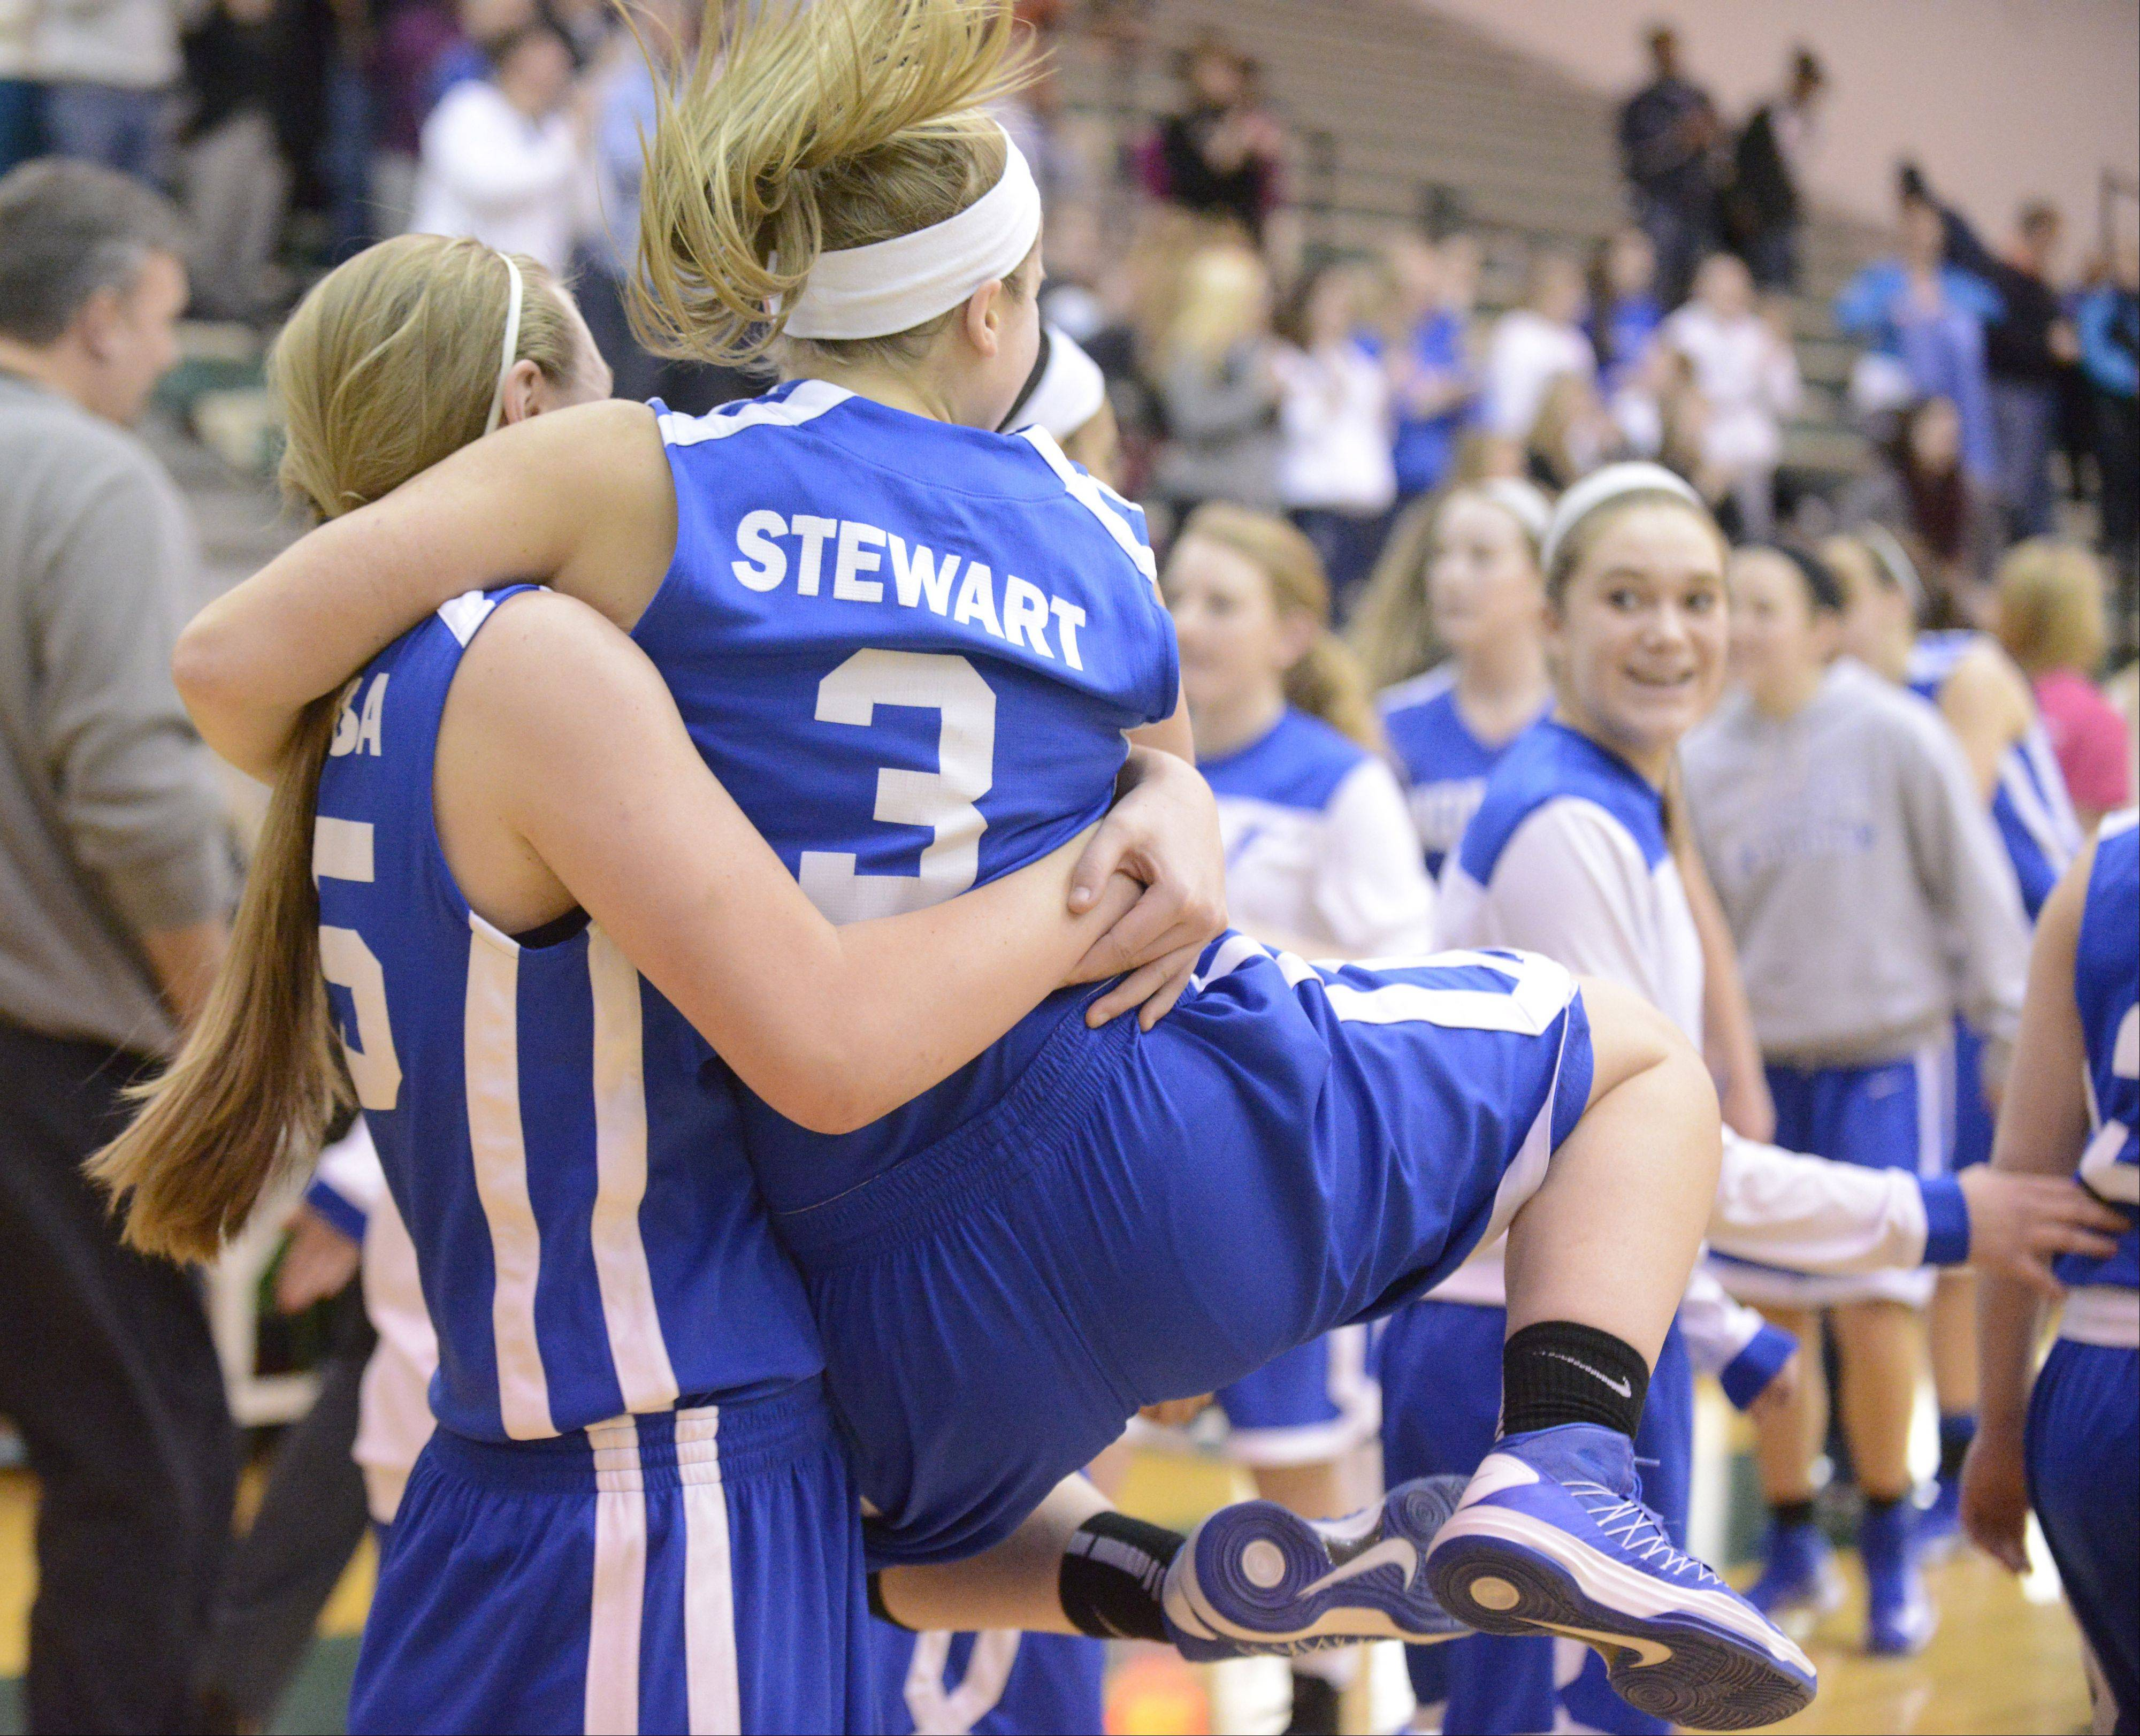 Wheaton North's Mandy Traversa lifts teammate Reilly Stewart as she clicks her heels after their win over Schaumburg in the Class 4A regional game on Tuesday, February 19.